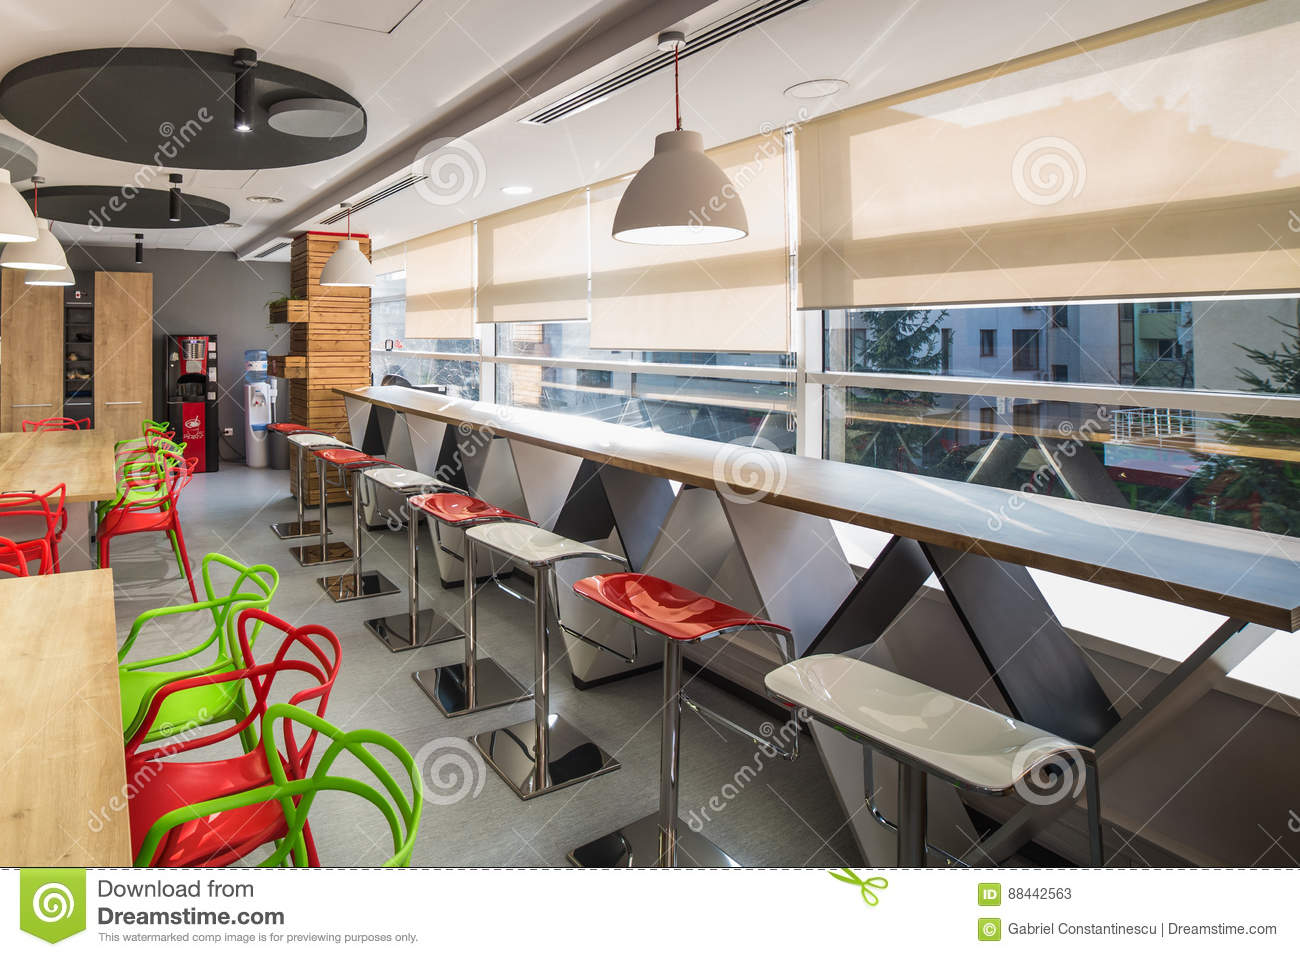 Dining room in office building